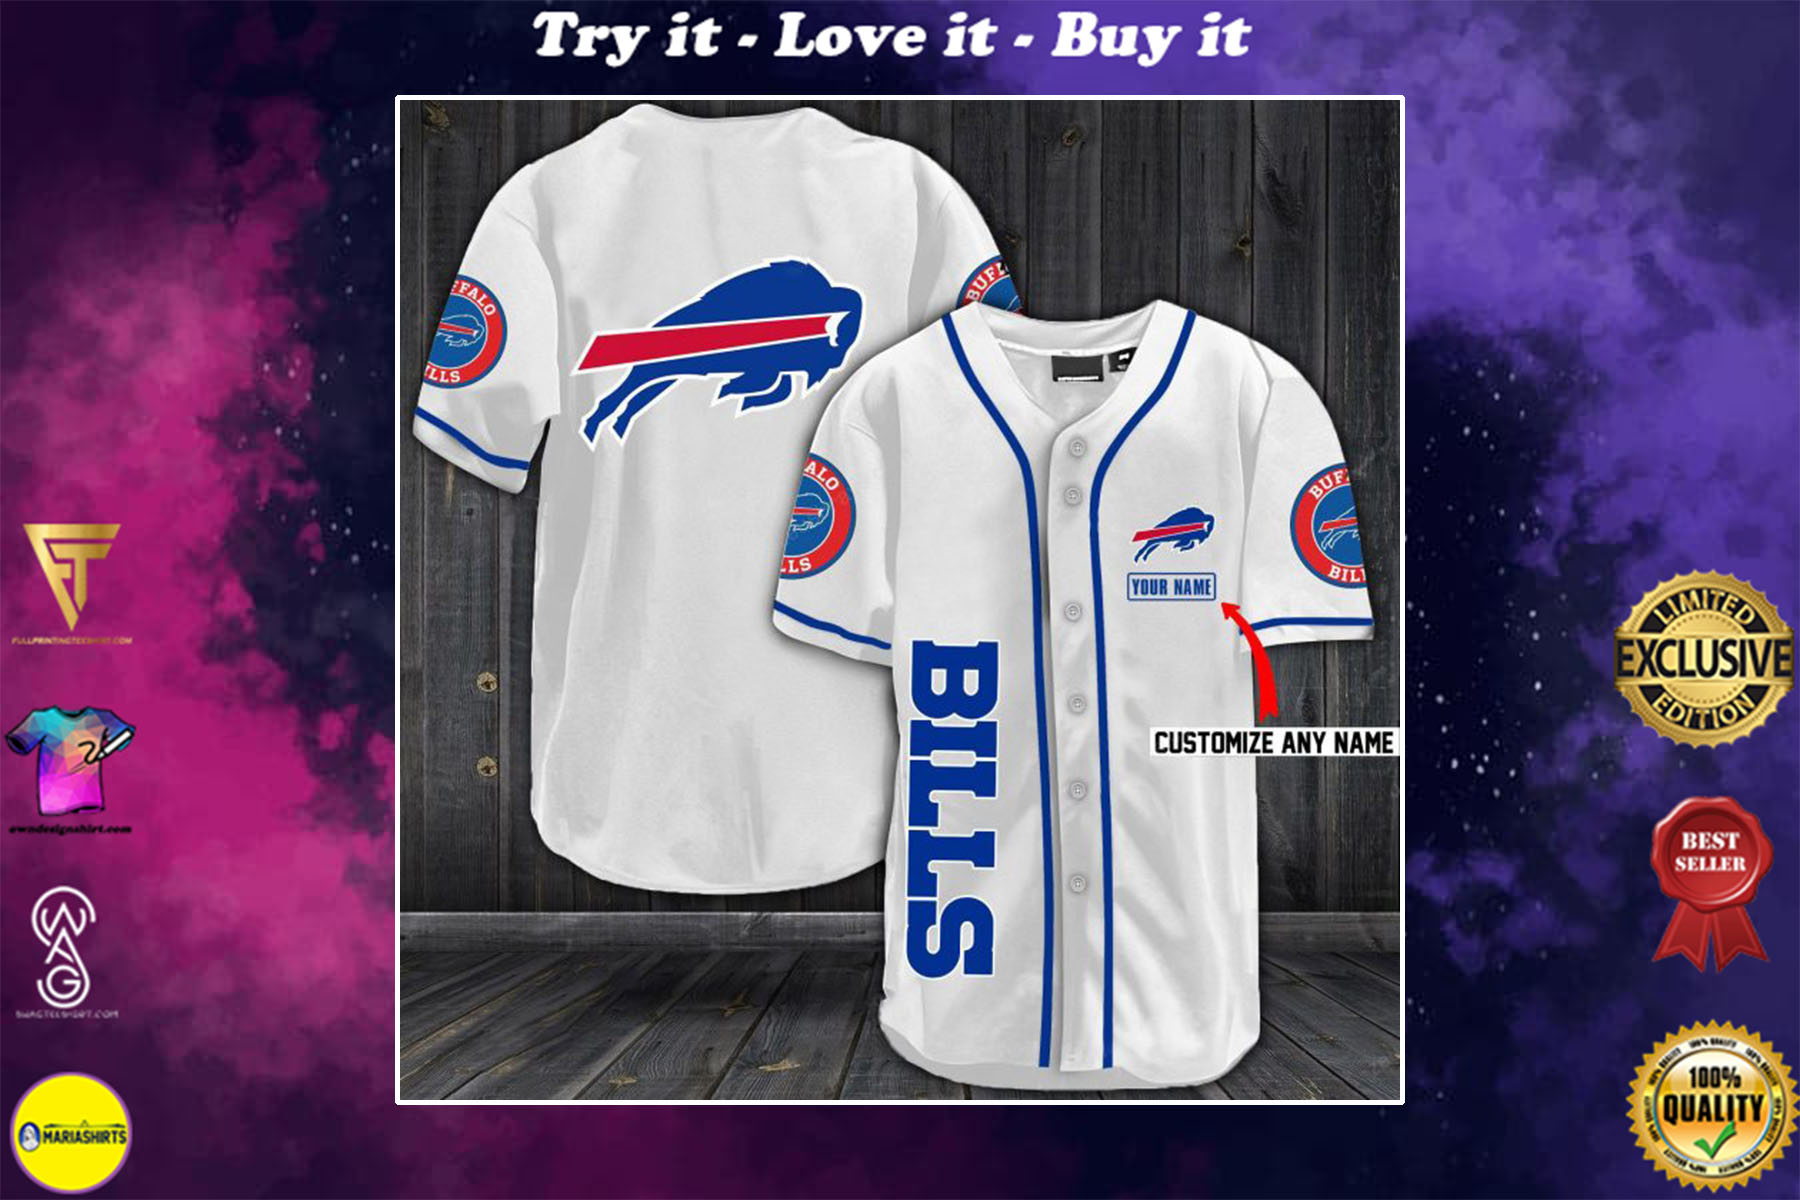 [special edition] personalized name jersey buffalo bills full printing shirt - maria